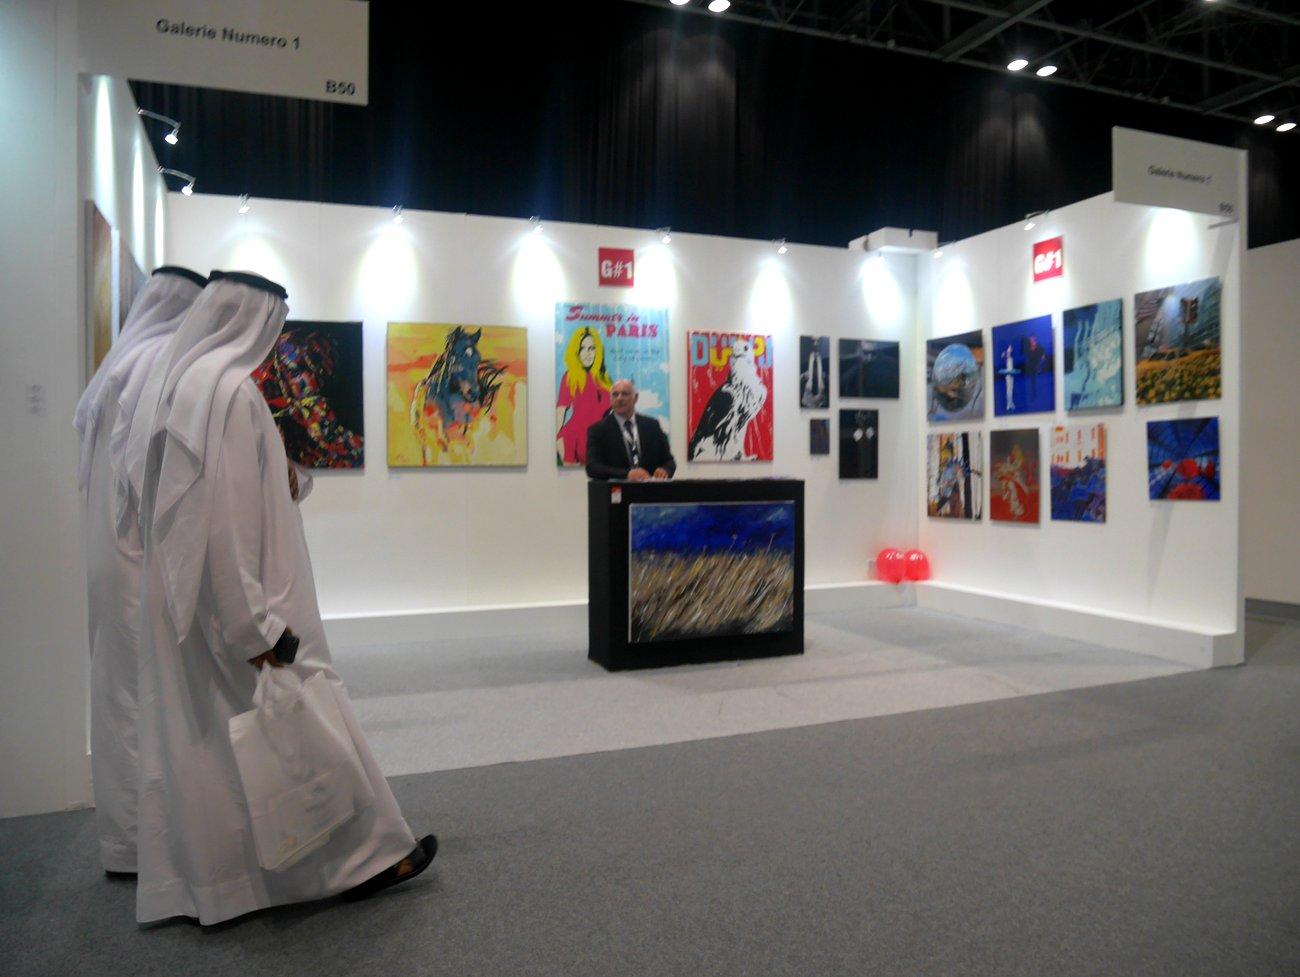 Gn1 expose au World Art Dubaï